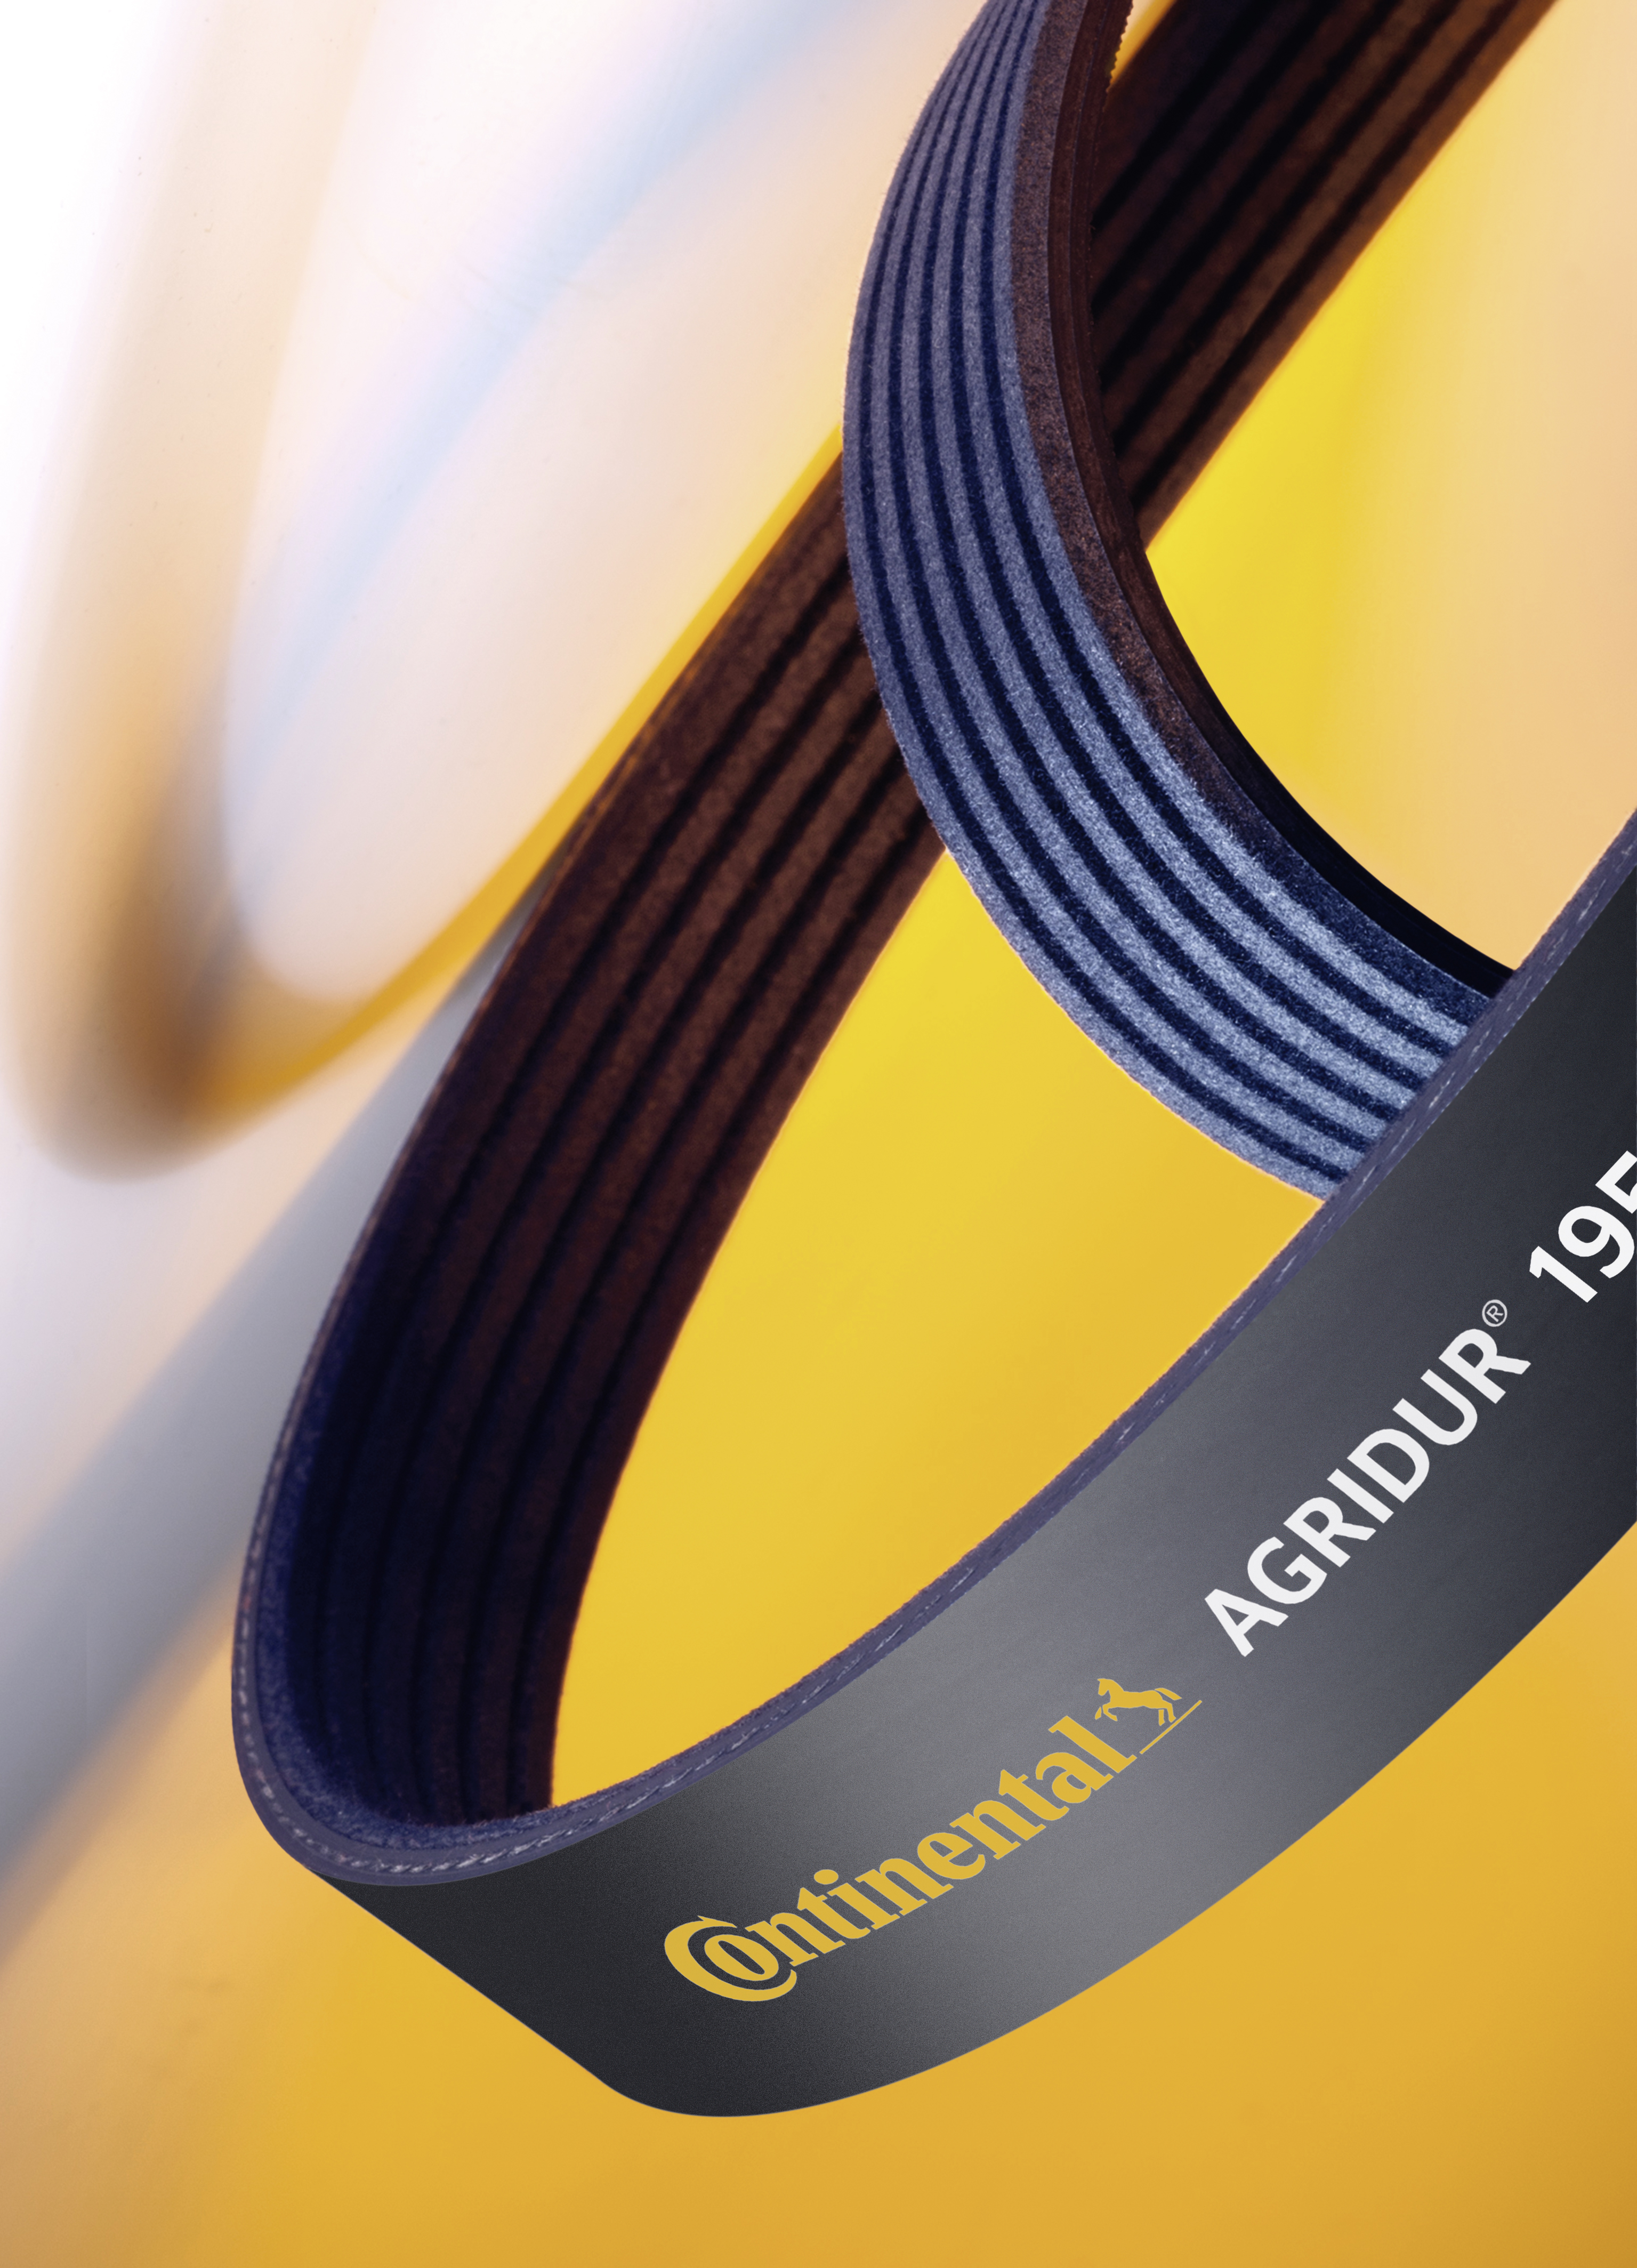 Continental_PP_Components_Agricultural_Industry_Agridur_KRR